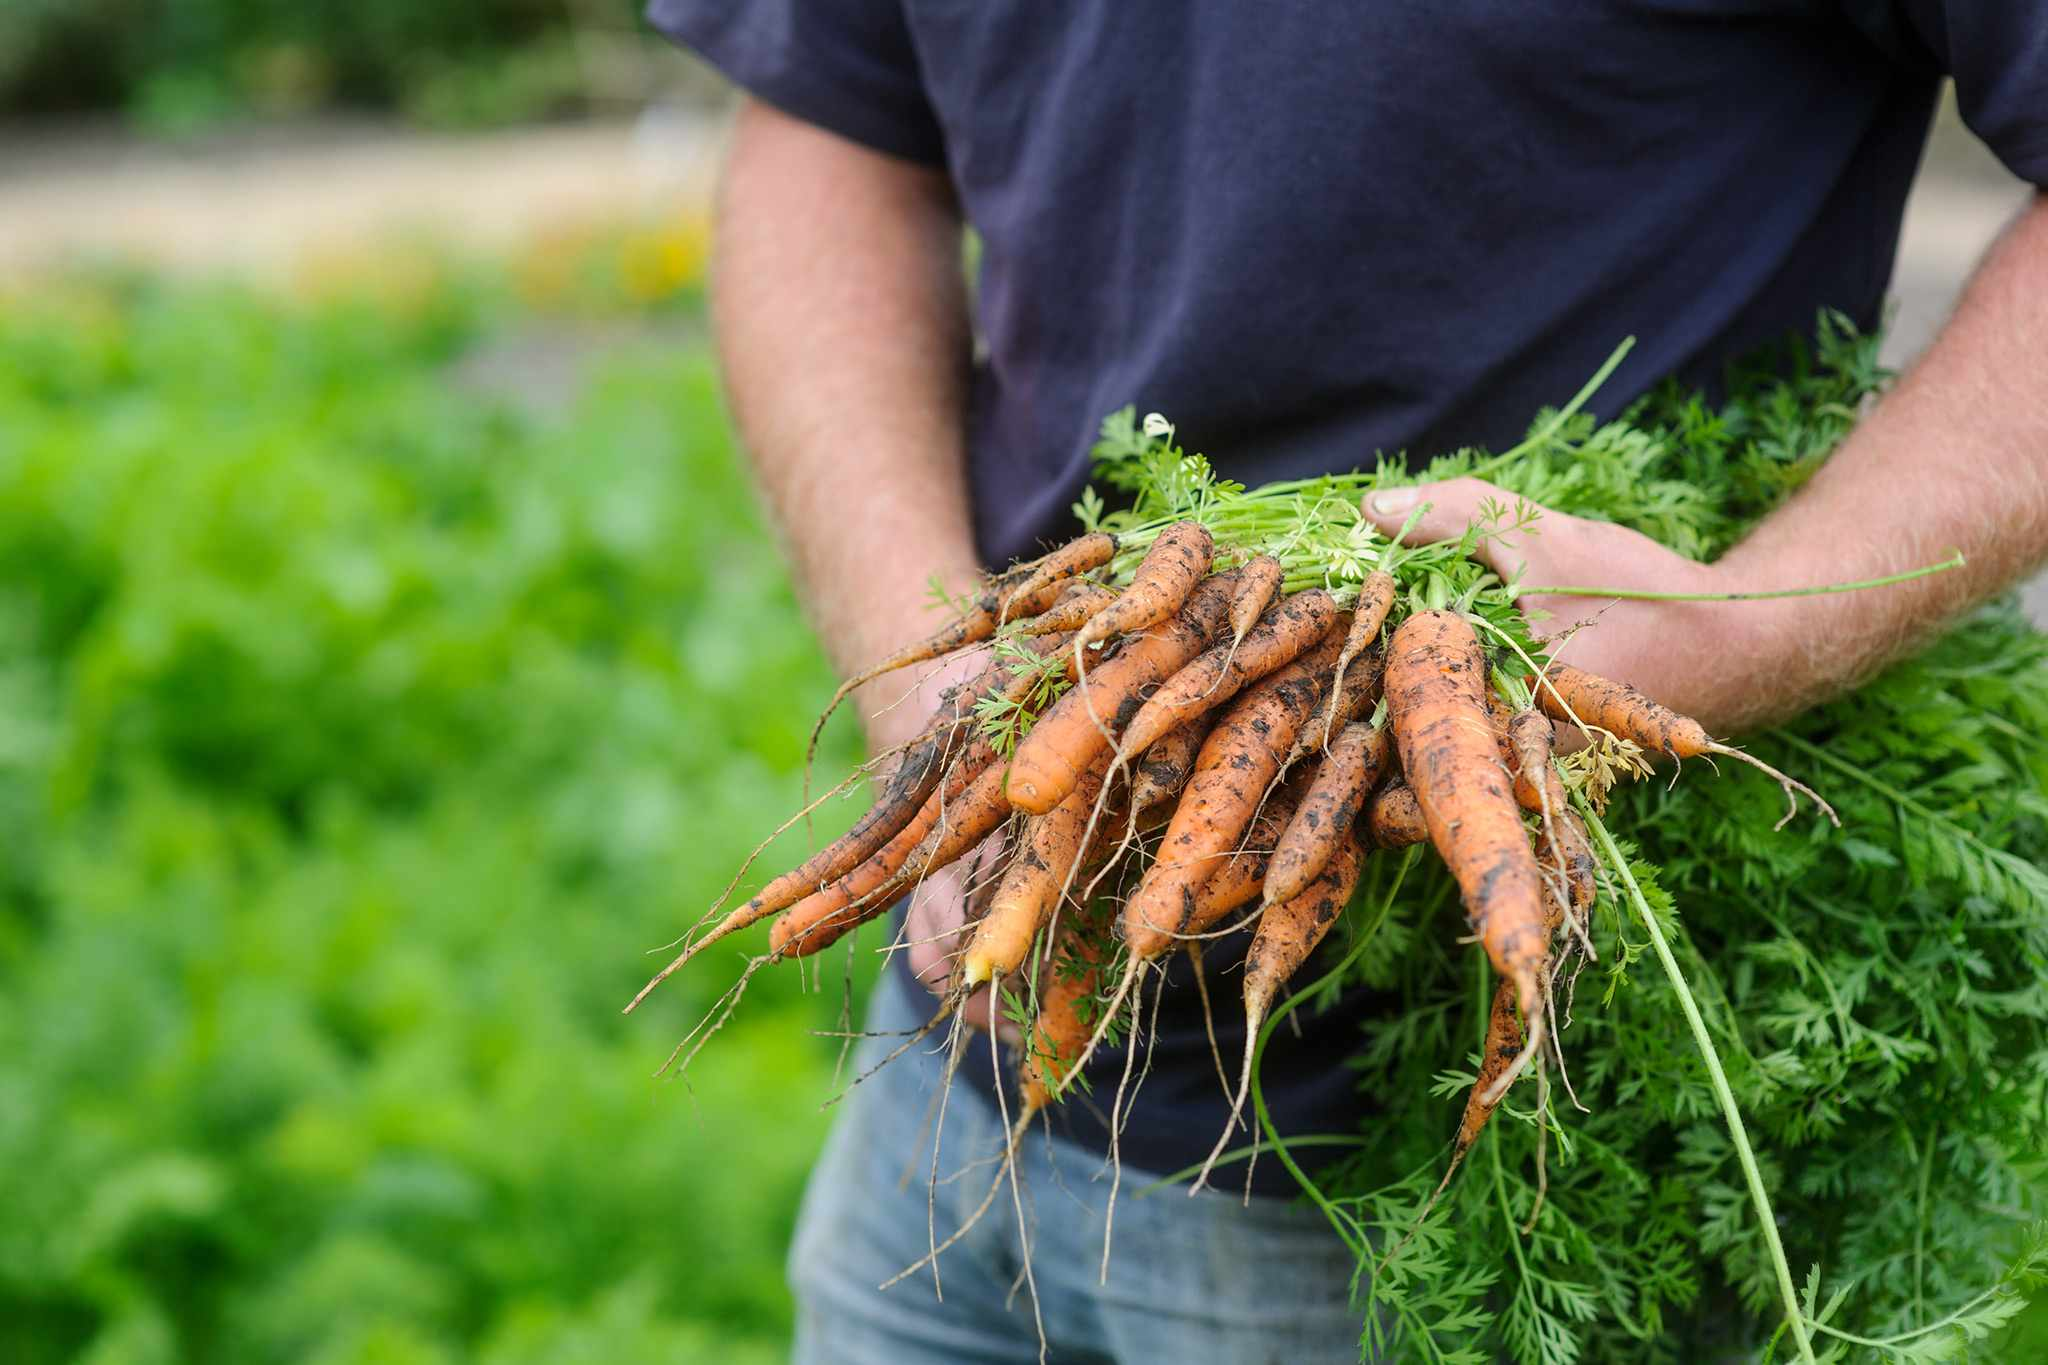 Carrying a bundle of freshly harvested carrots